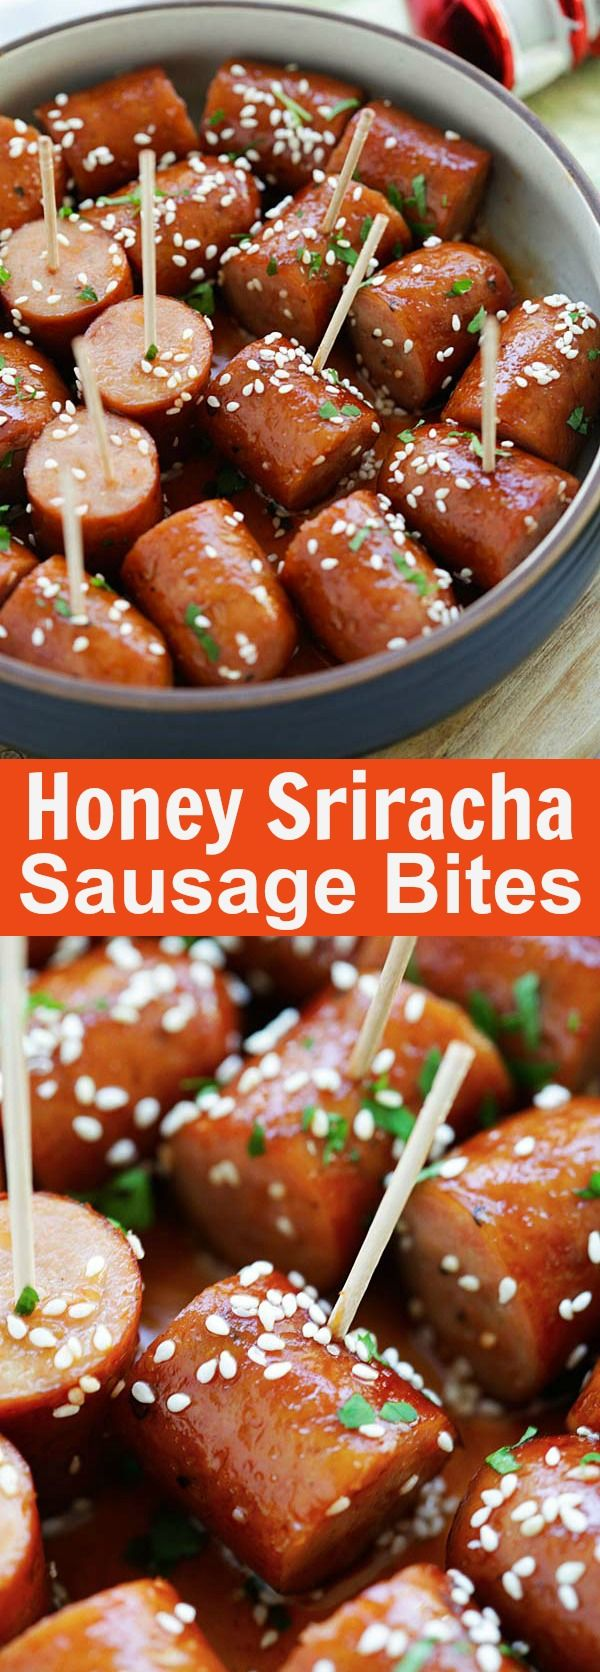 Honey Sriracha Sausage Bites – sticky, sweet and spicy sausage bites with honey sriracha sauce. An easy delicious appetizer that is a crowd pleaser | rasamalaysia.com